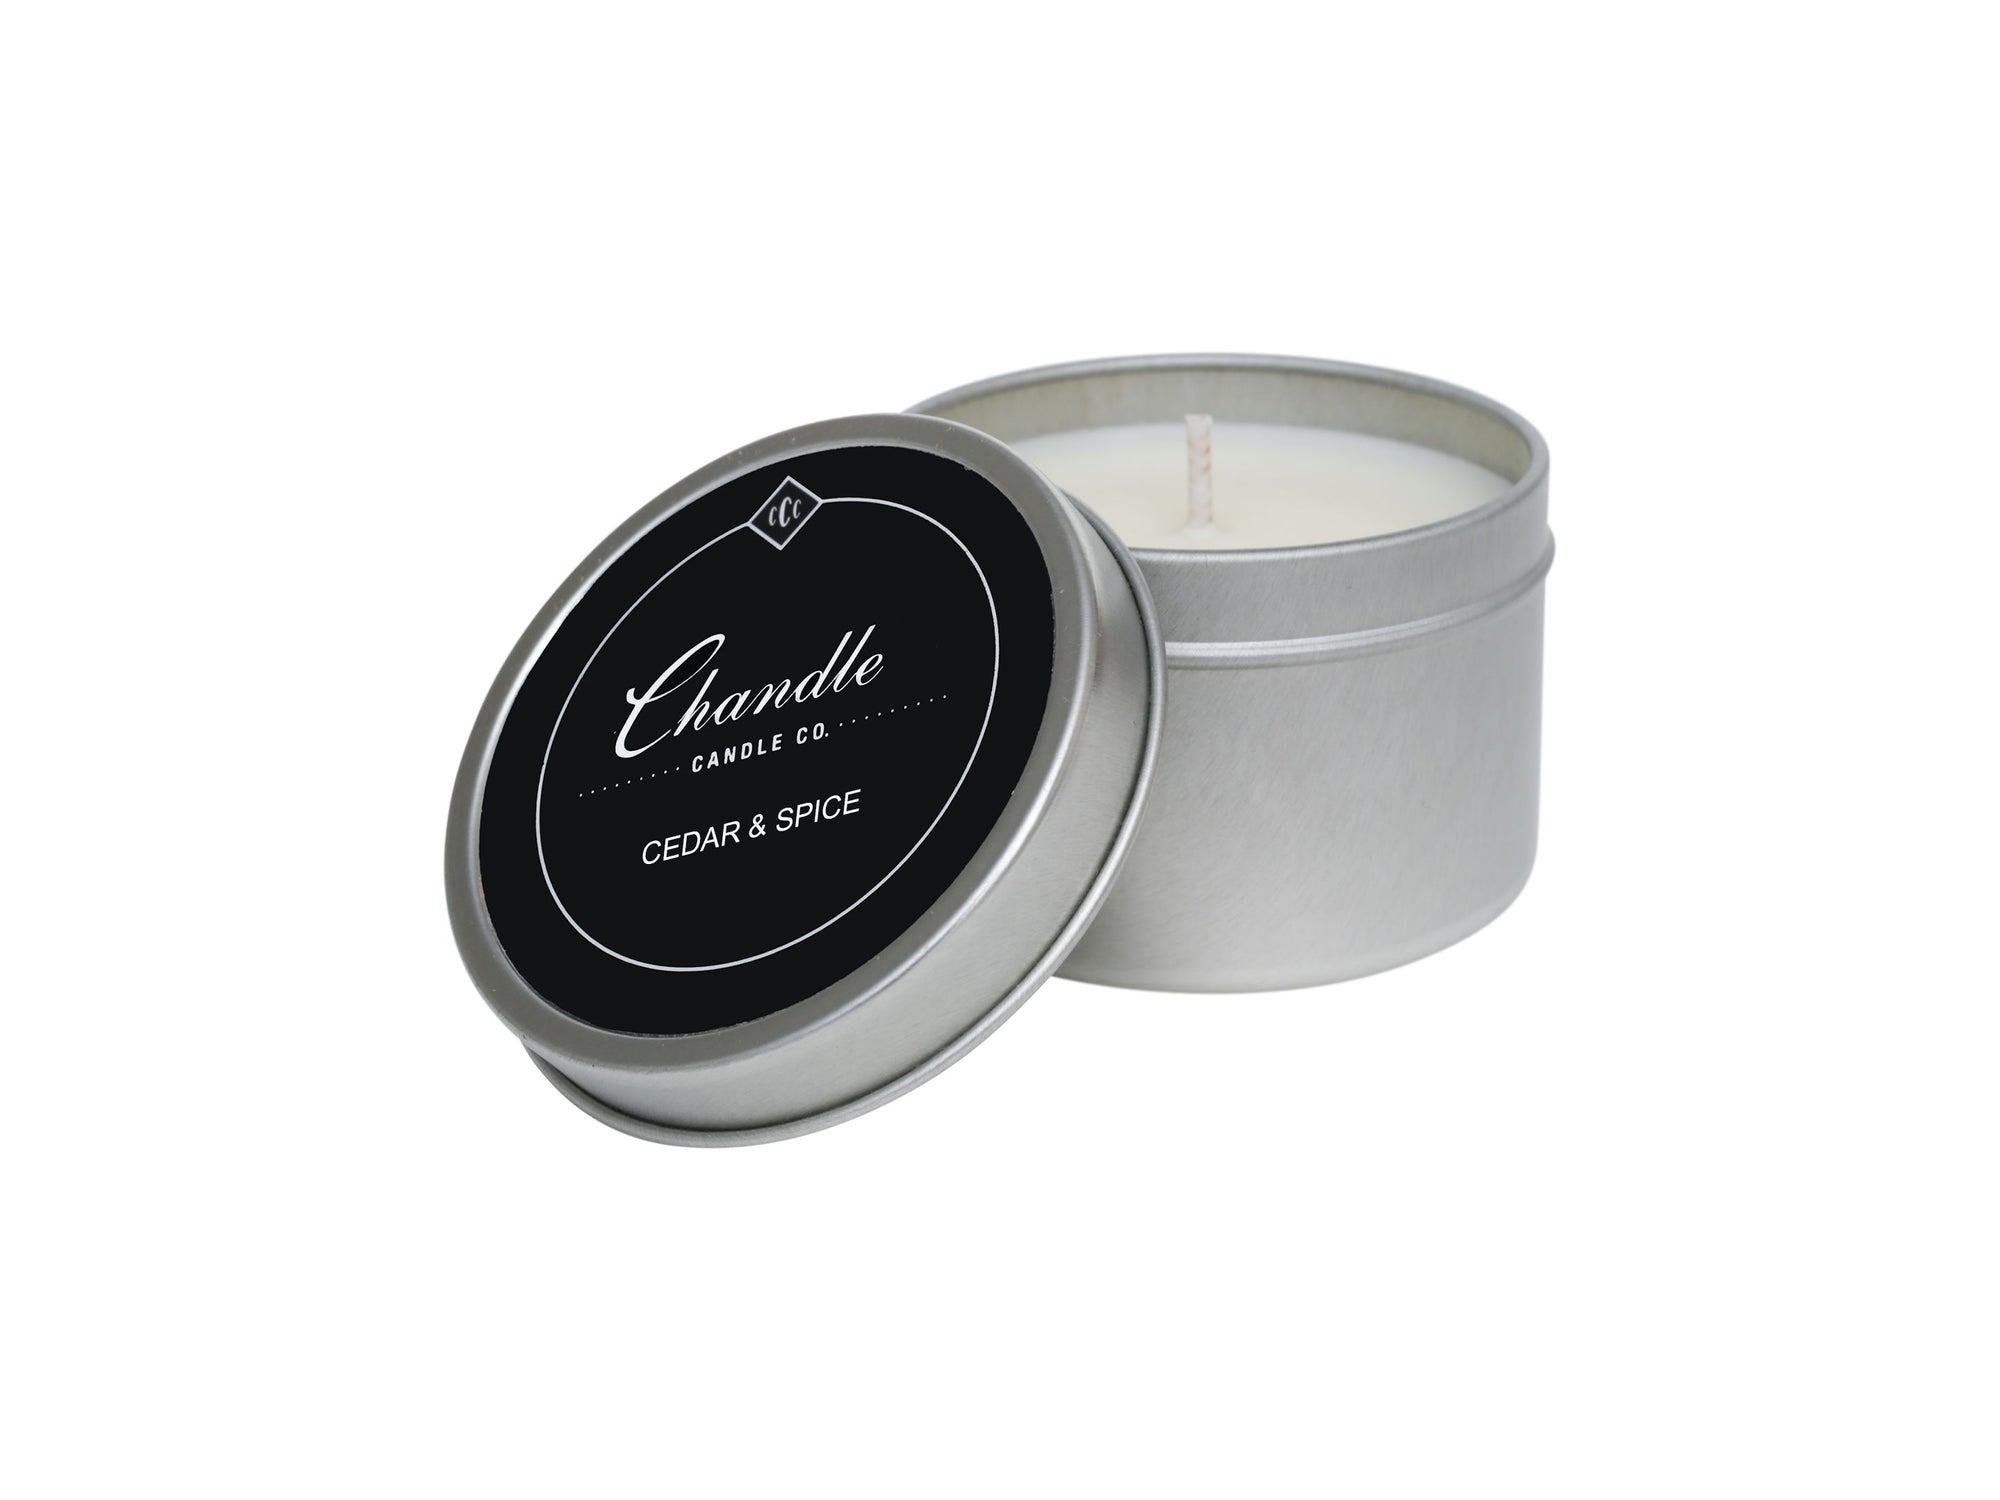 Cedar & Spice scented Travel Tin Candle